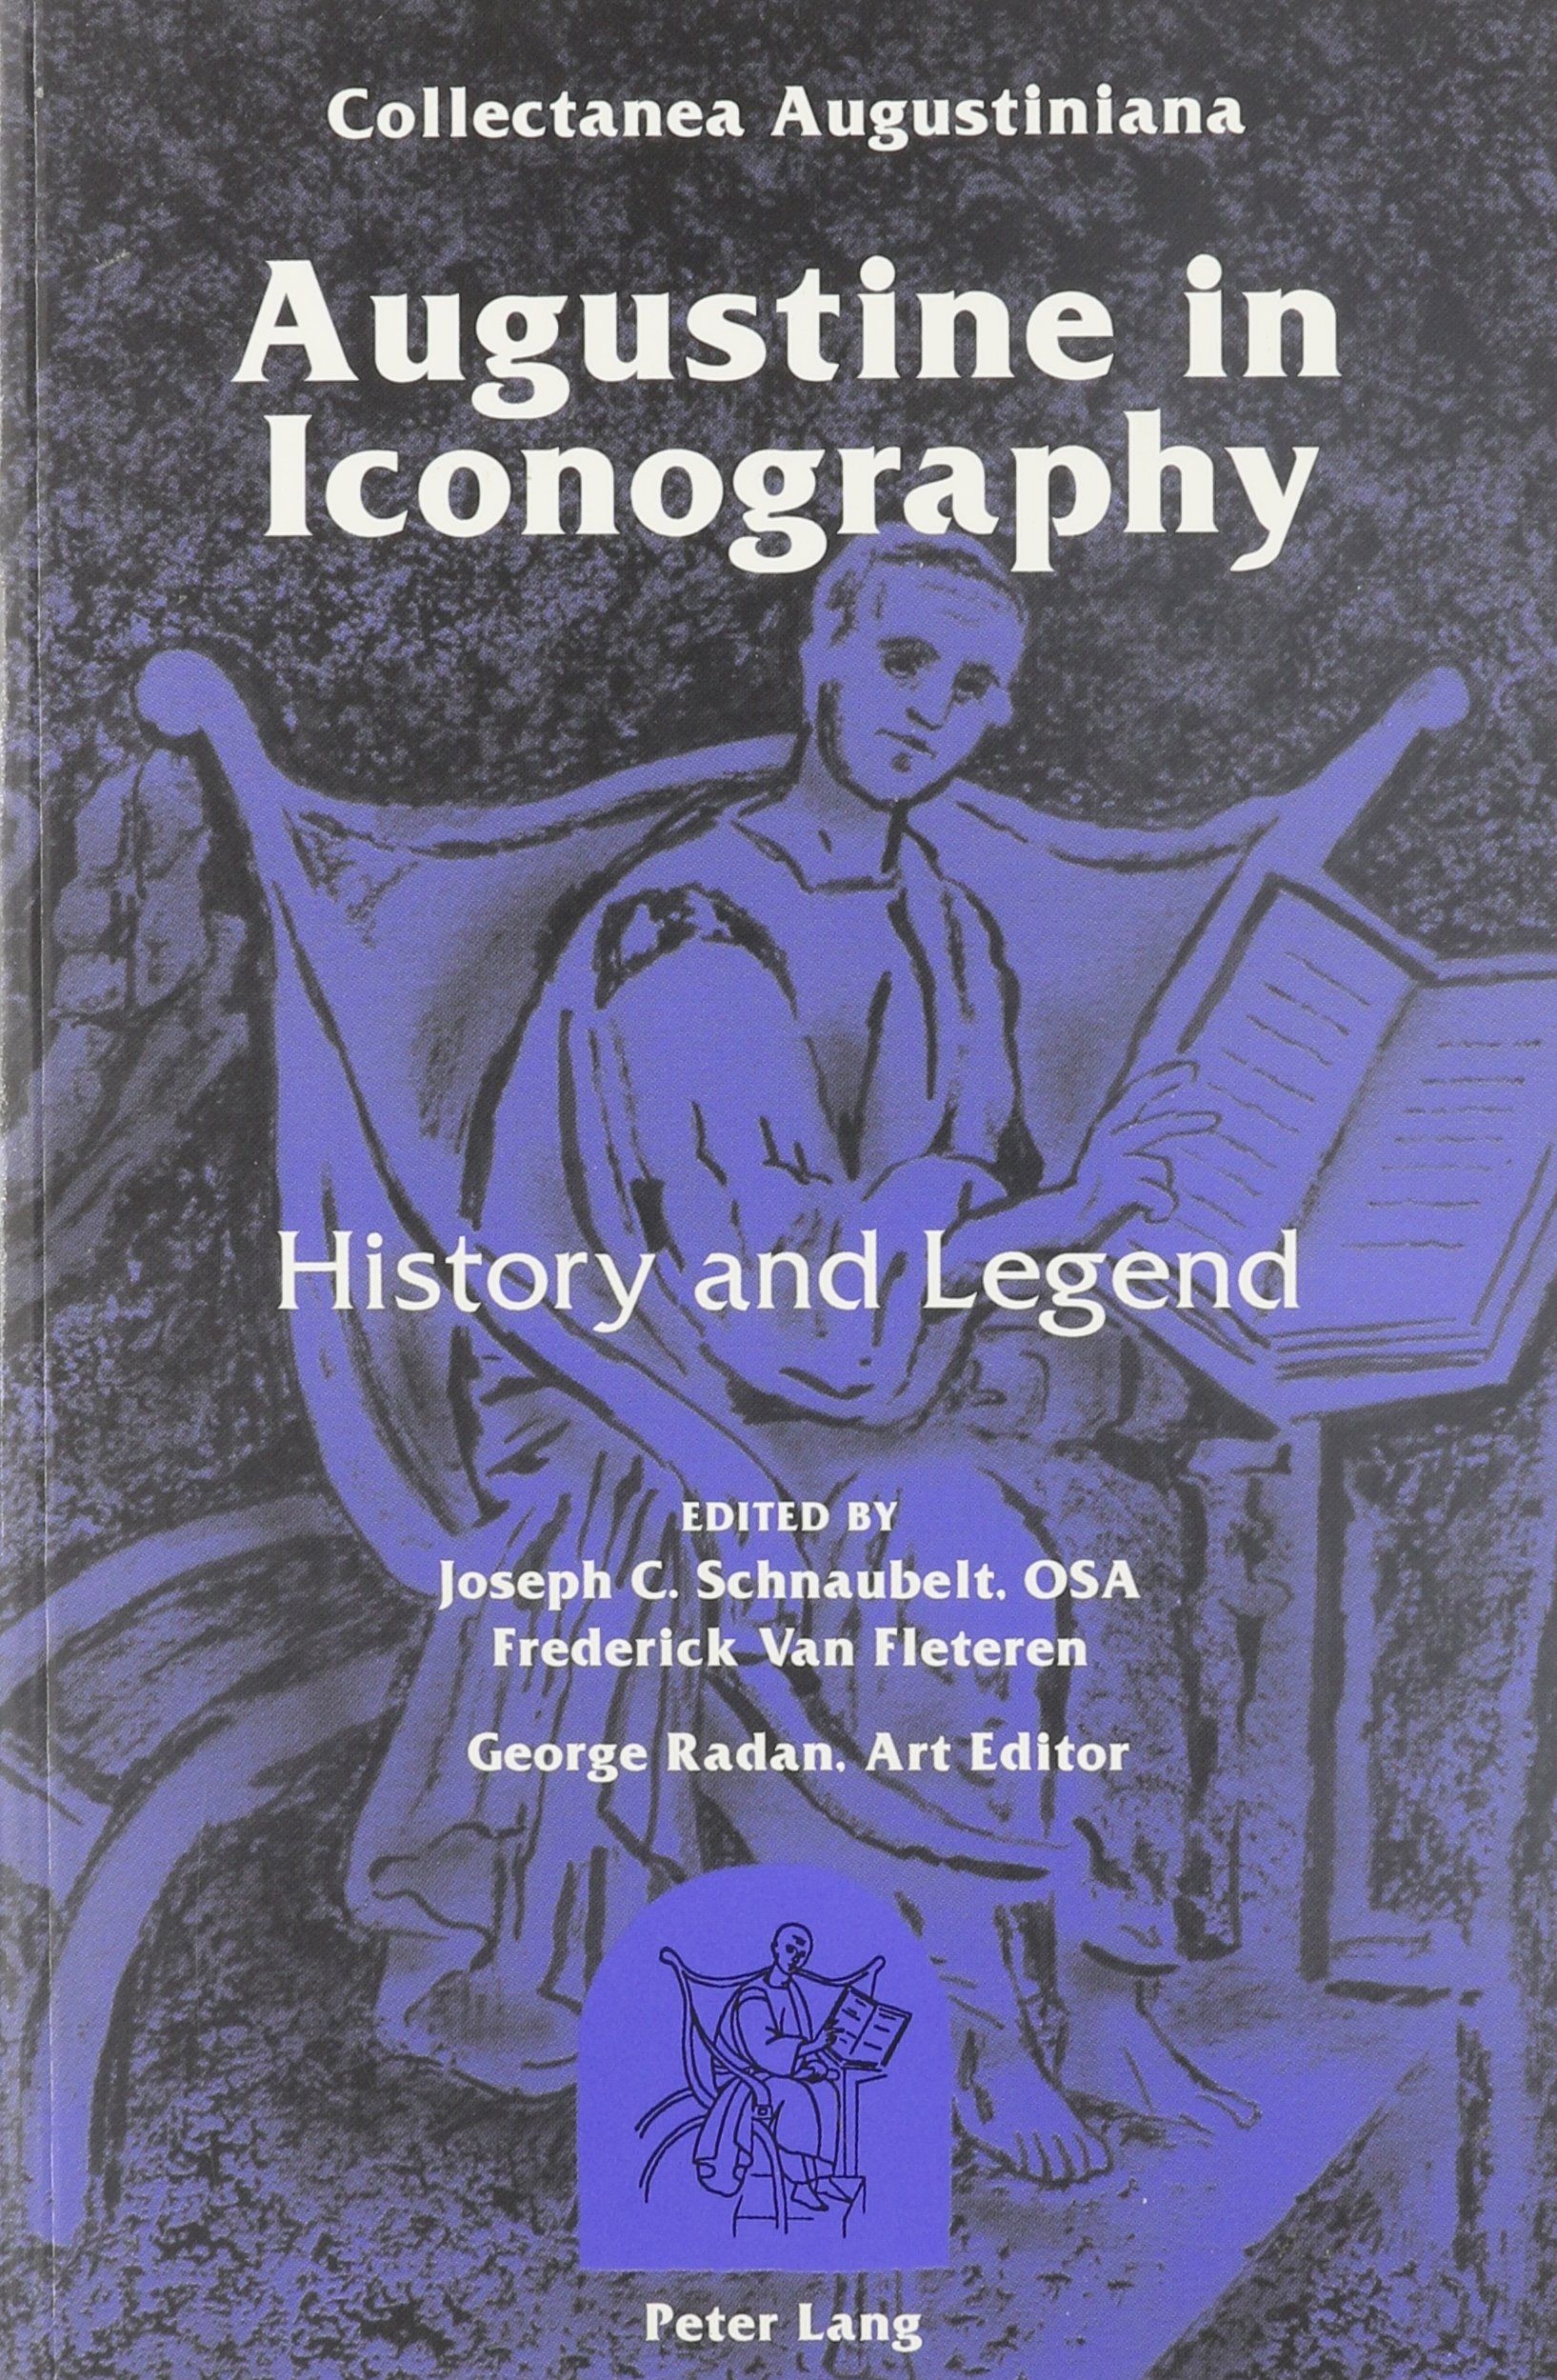 Augustine in Iconography: History and Legend- Edited by Joseph C. Schnaubelt and Frederick Van Fleteren- George Radan, Art Editor Joseph Reino, ... (Augustinian Historical Institute Series) PDF